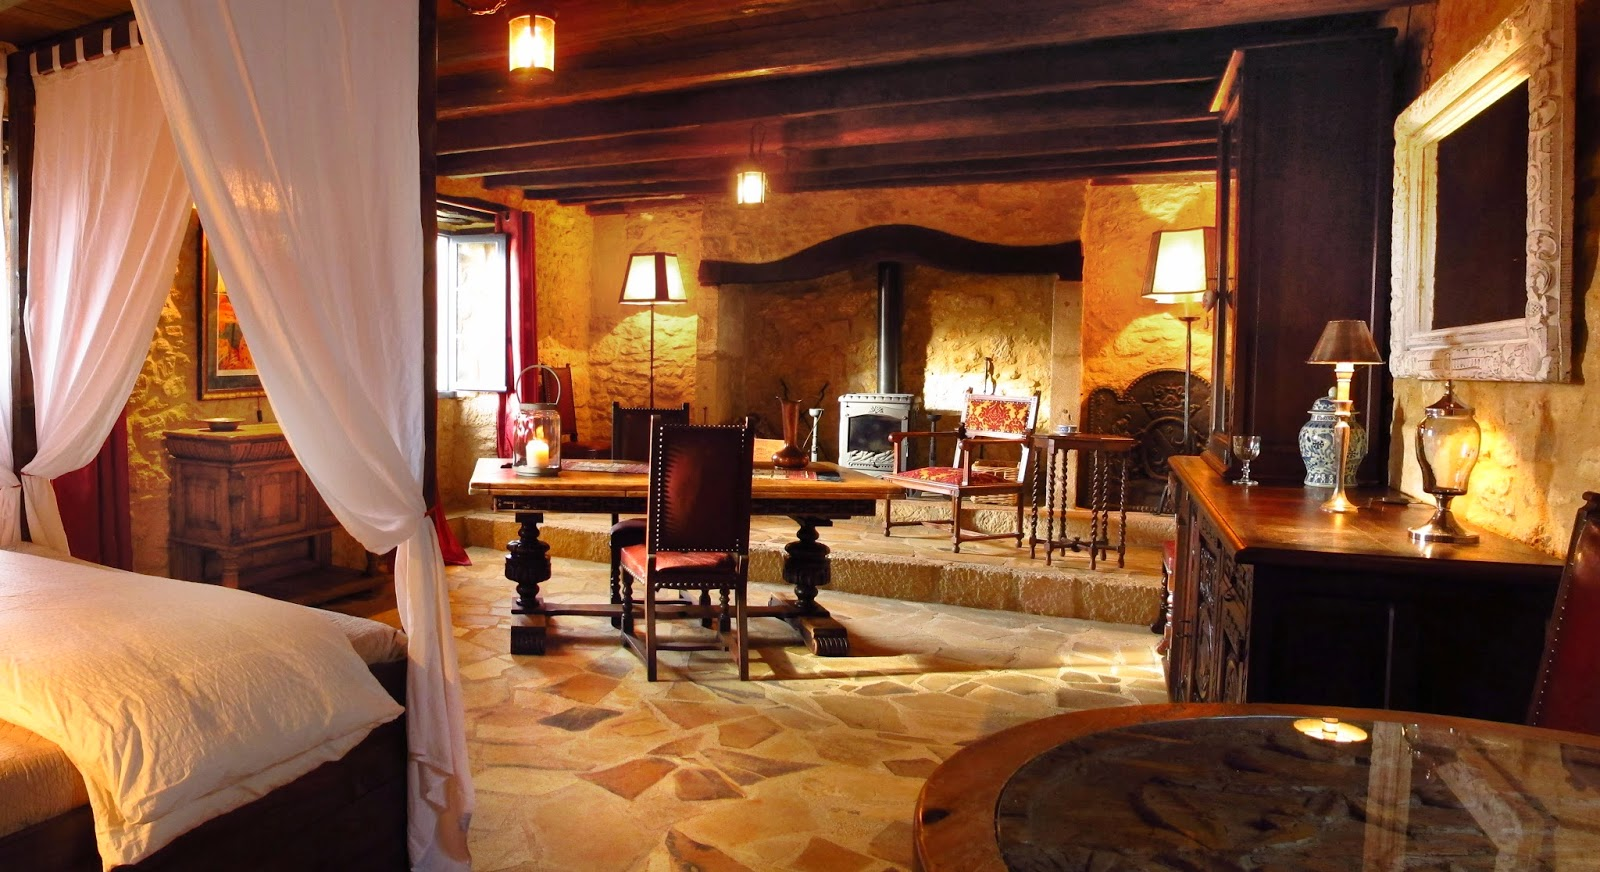 Bed and Breakfast Dordogne suite